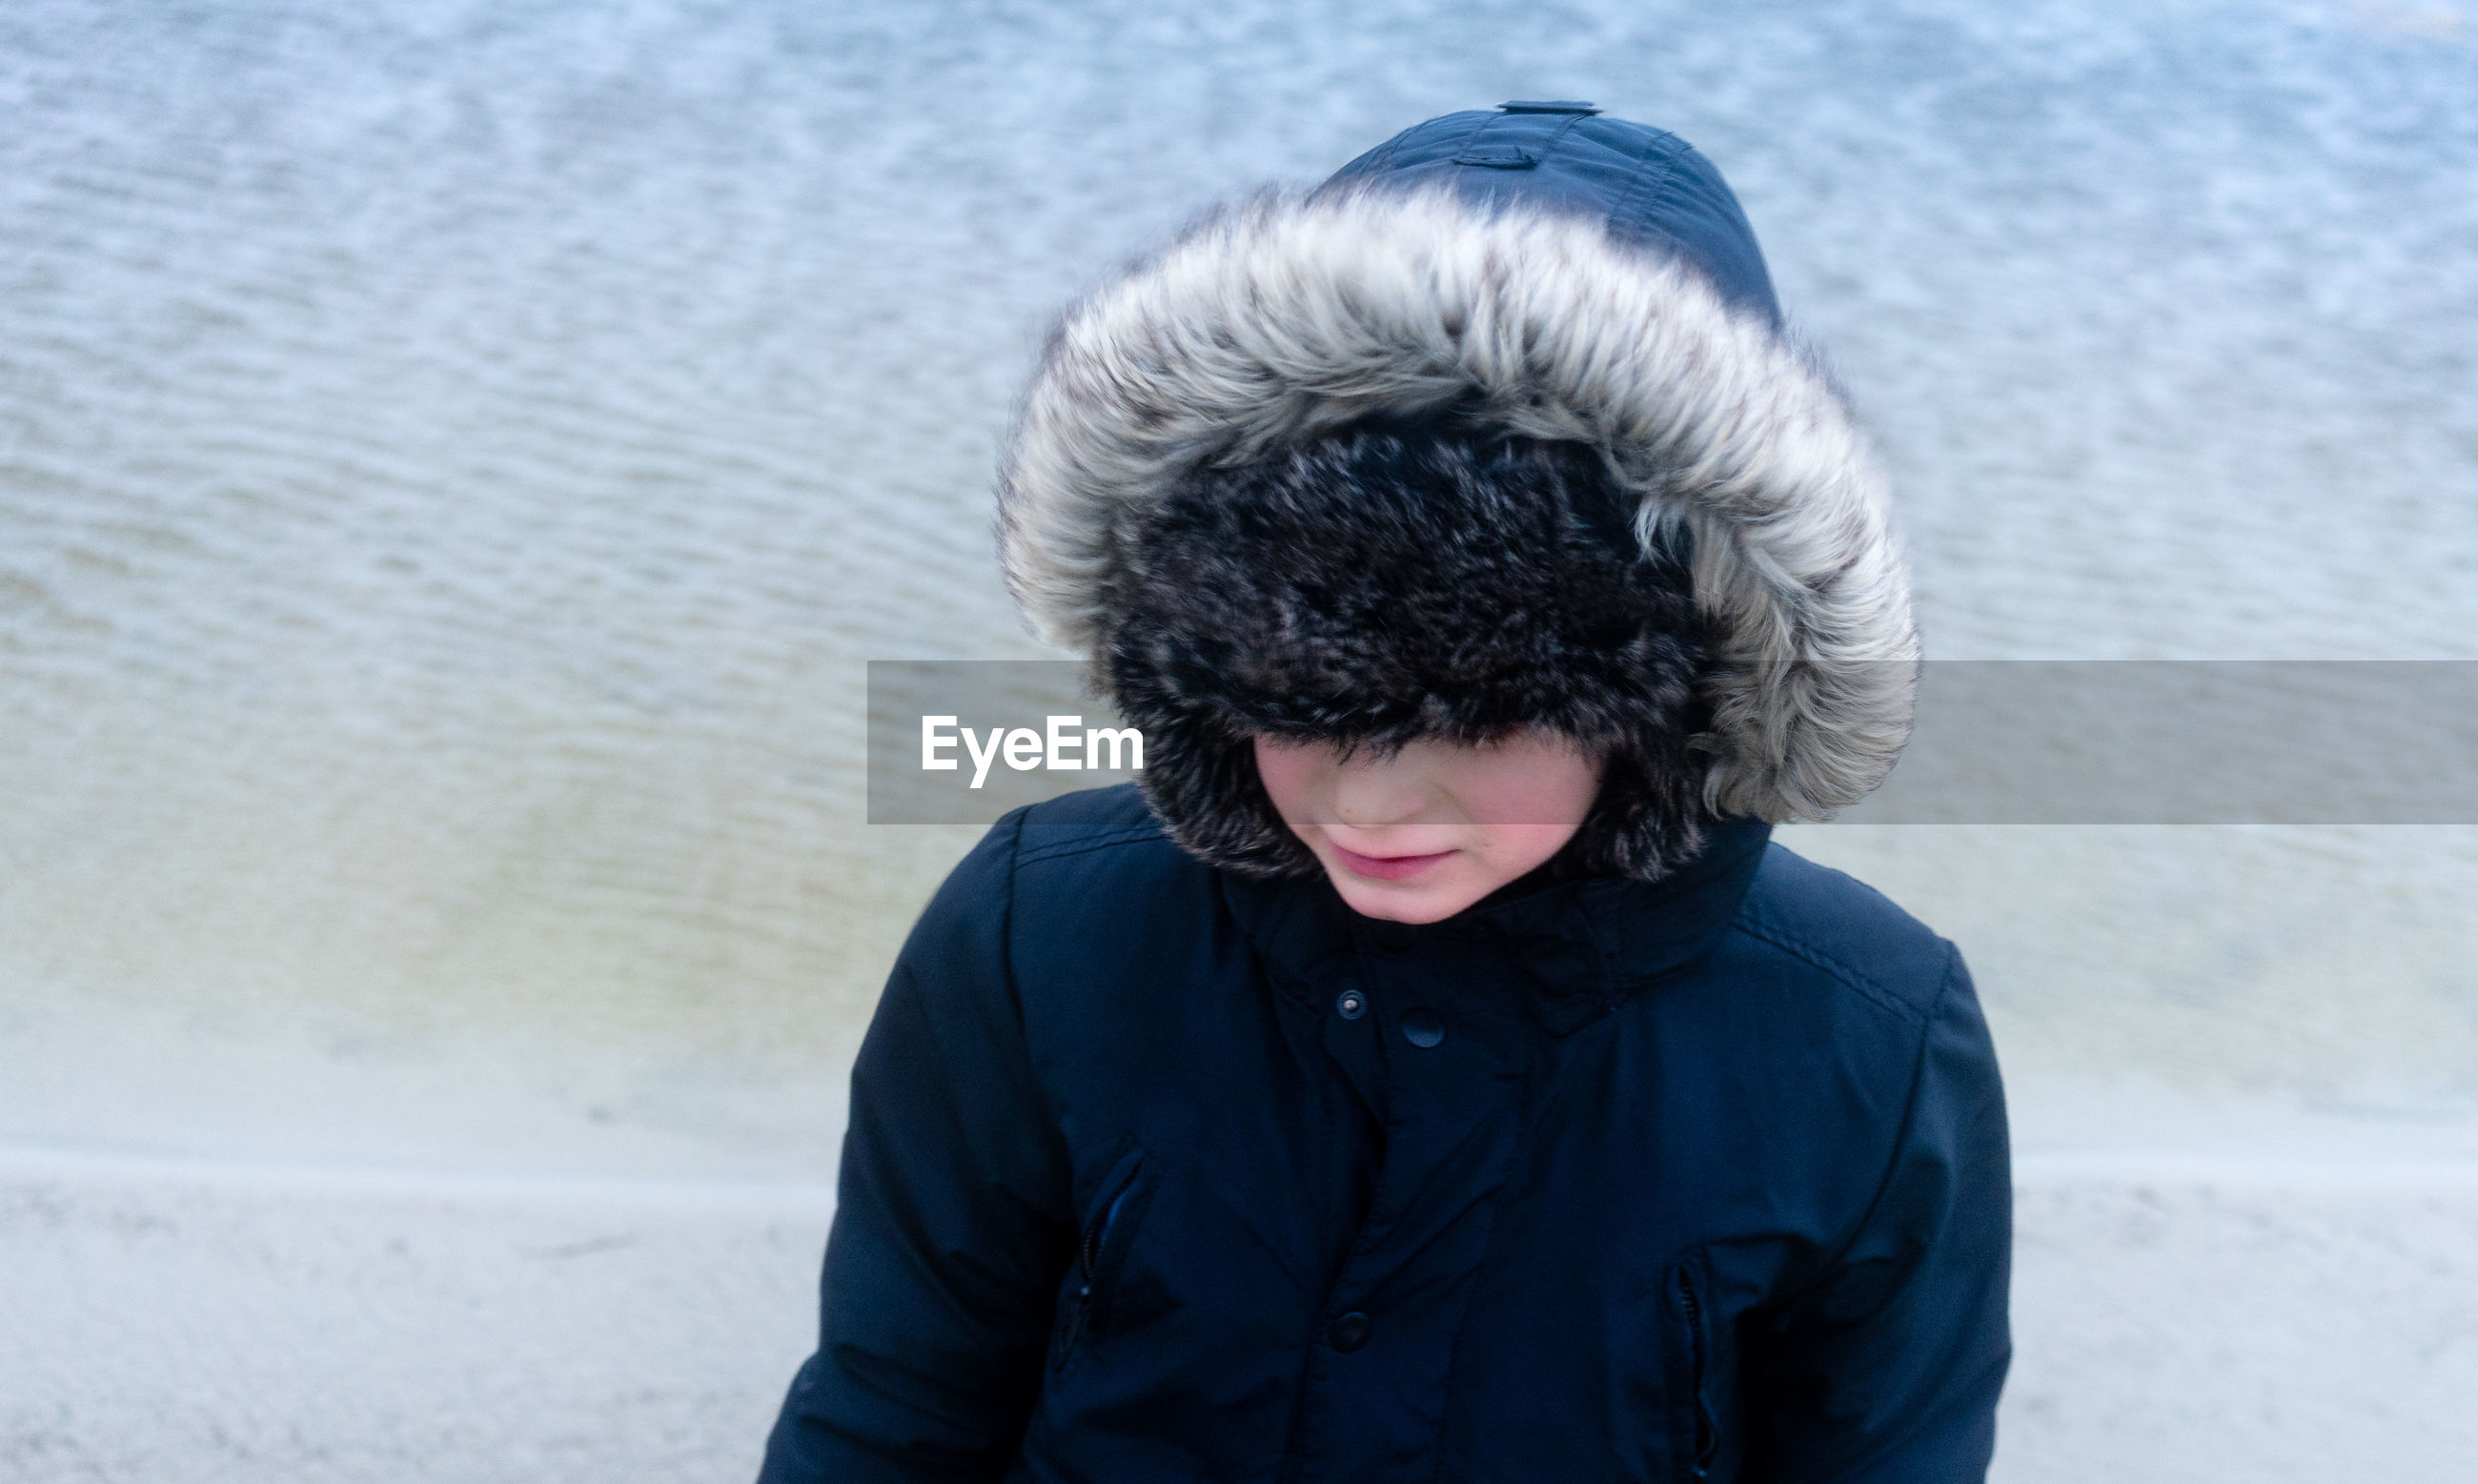 High angle view of woman wearing fur coat at beach during winter